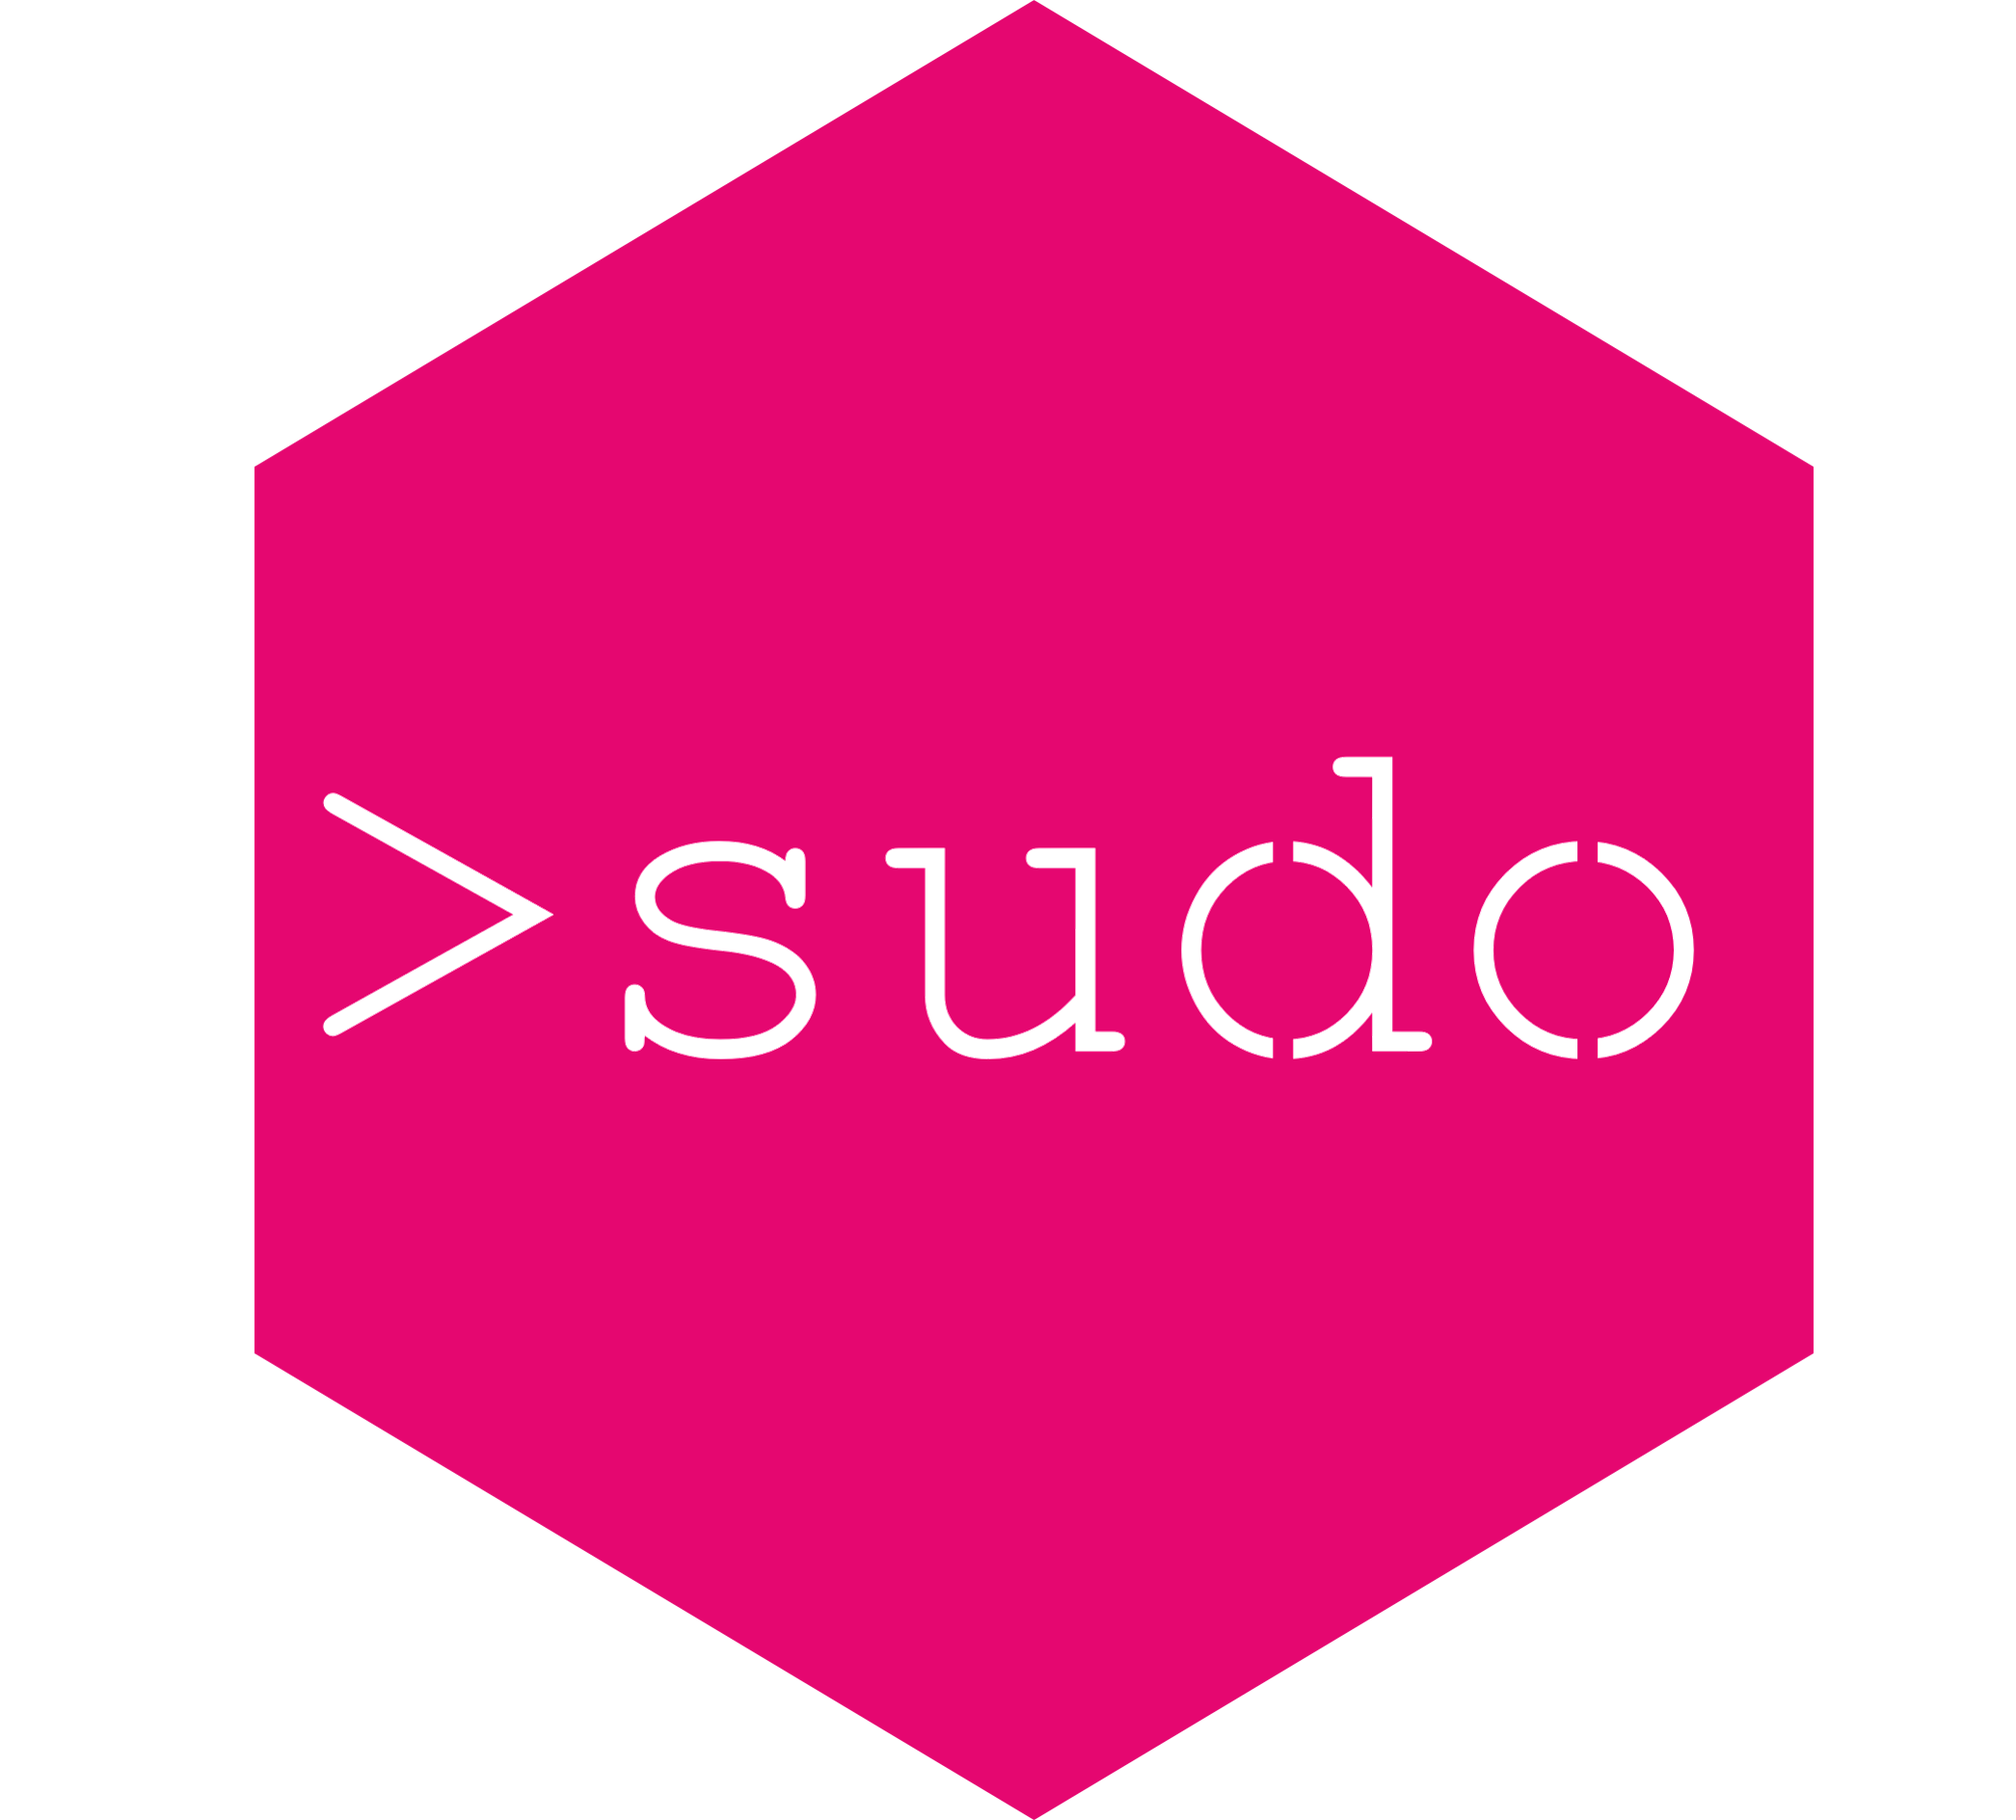 sudo_pink_seethrough